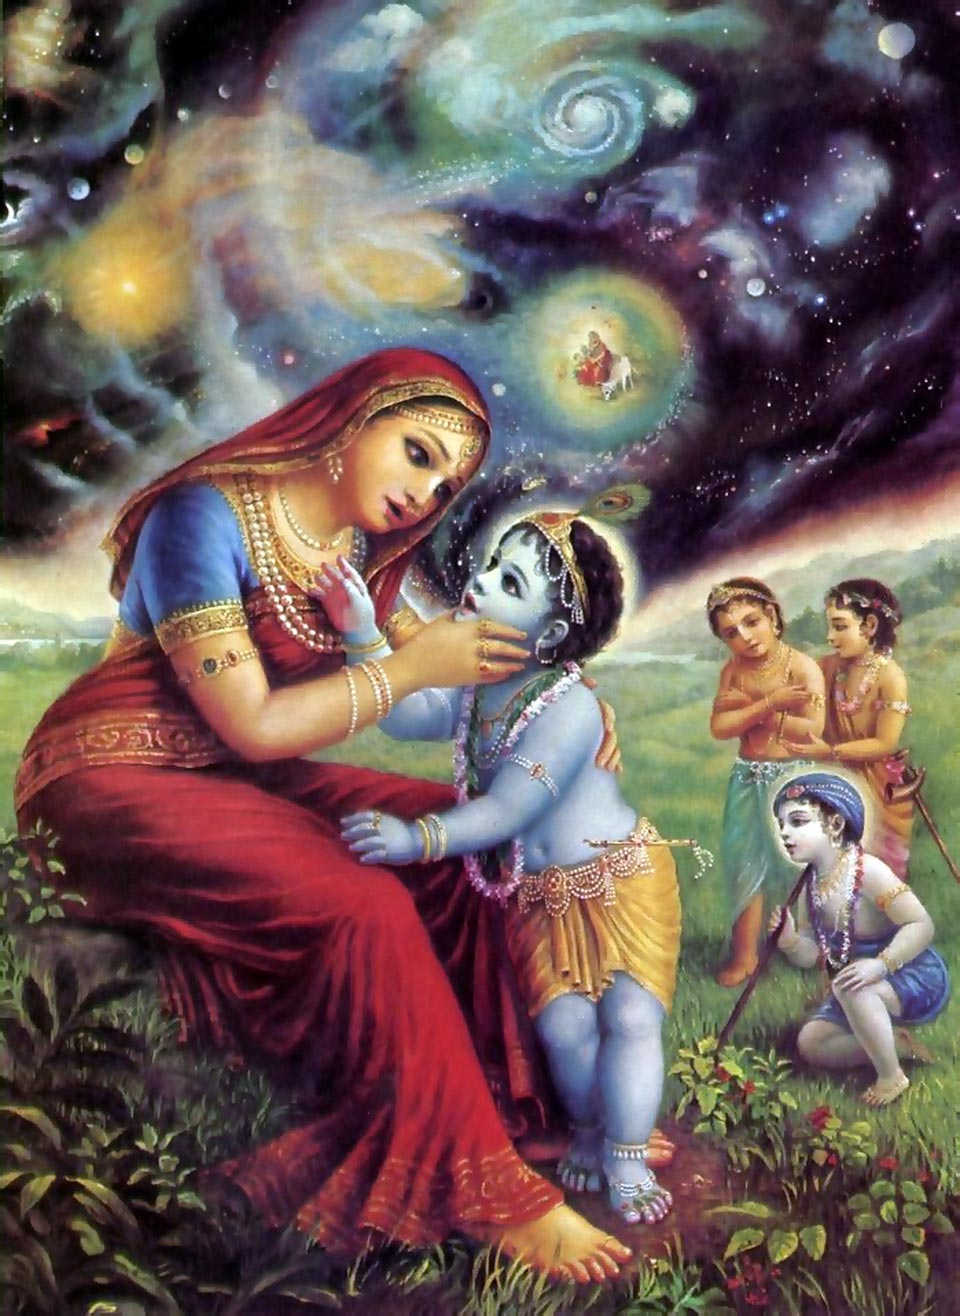 Cute Indian Baby Images For Wallpaper Radhanath Swami On Krishna Eating Dirt Radhanath Swami